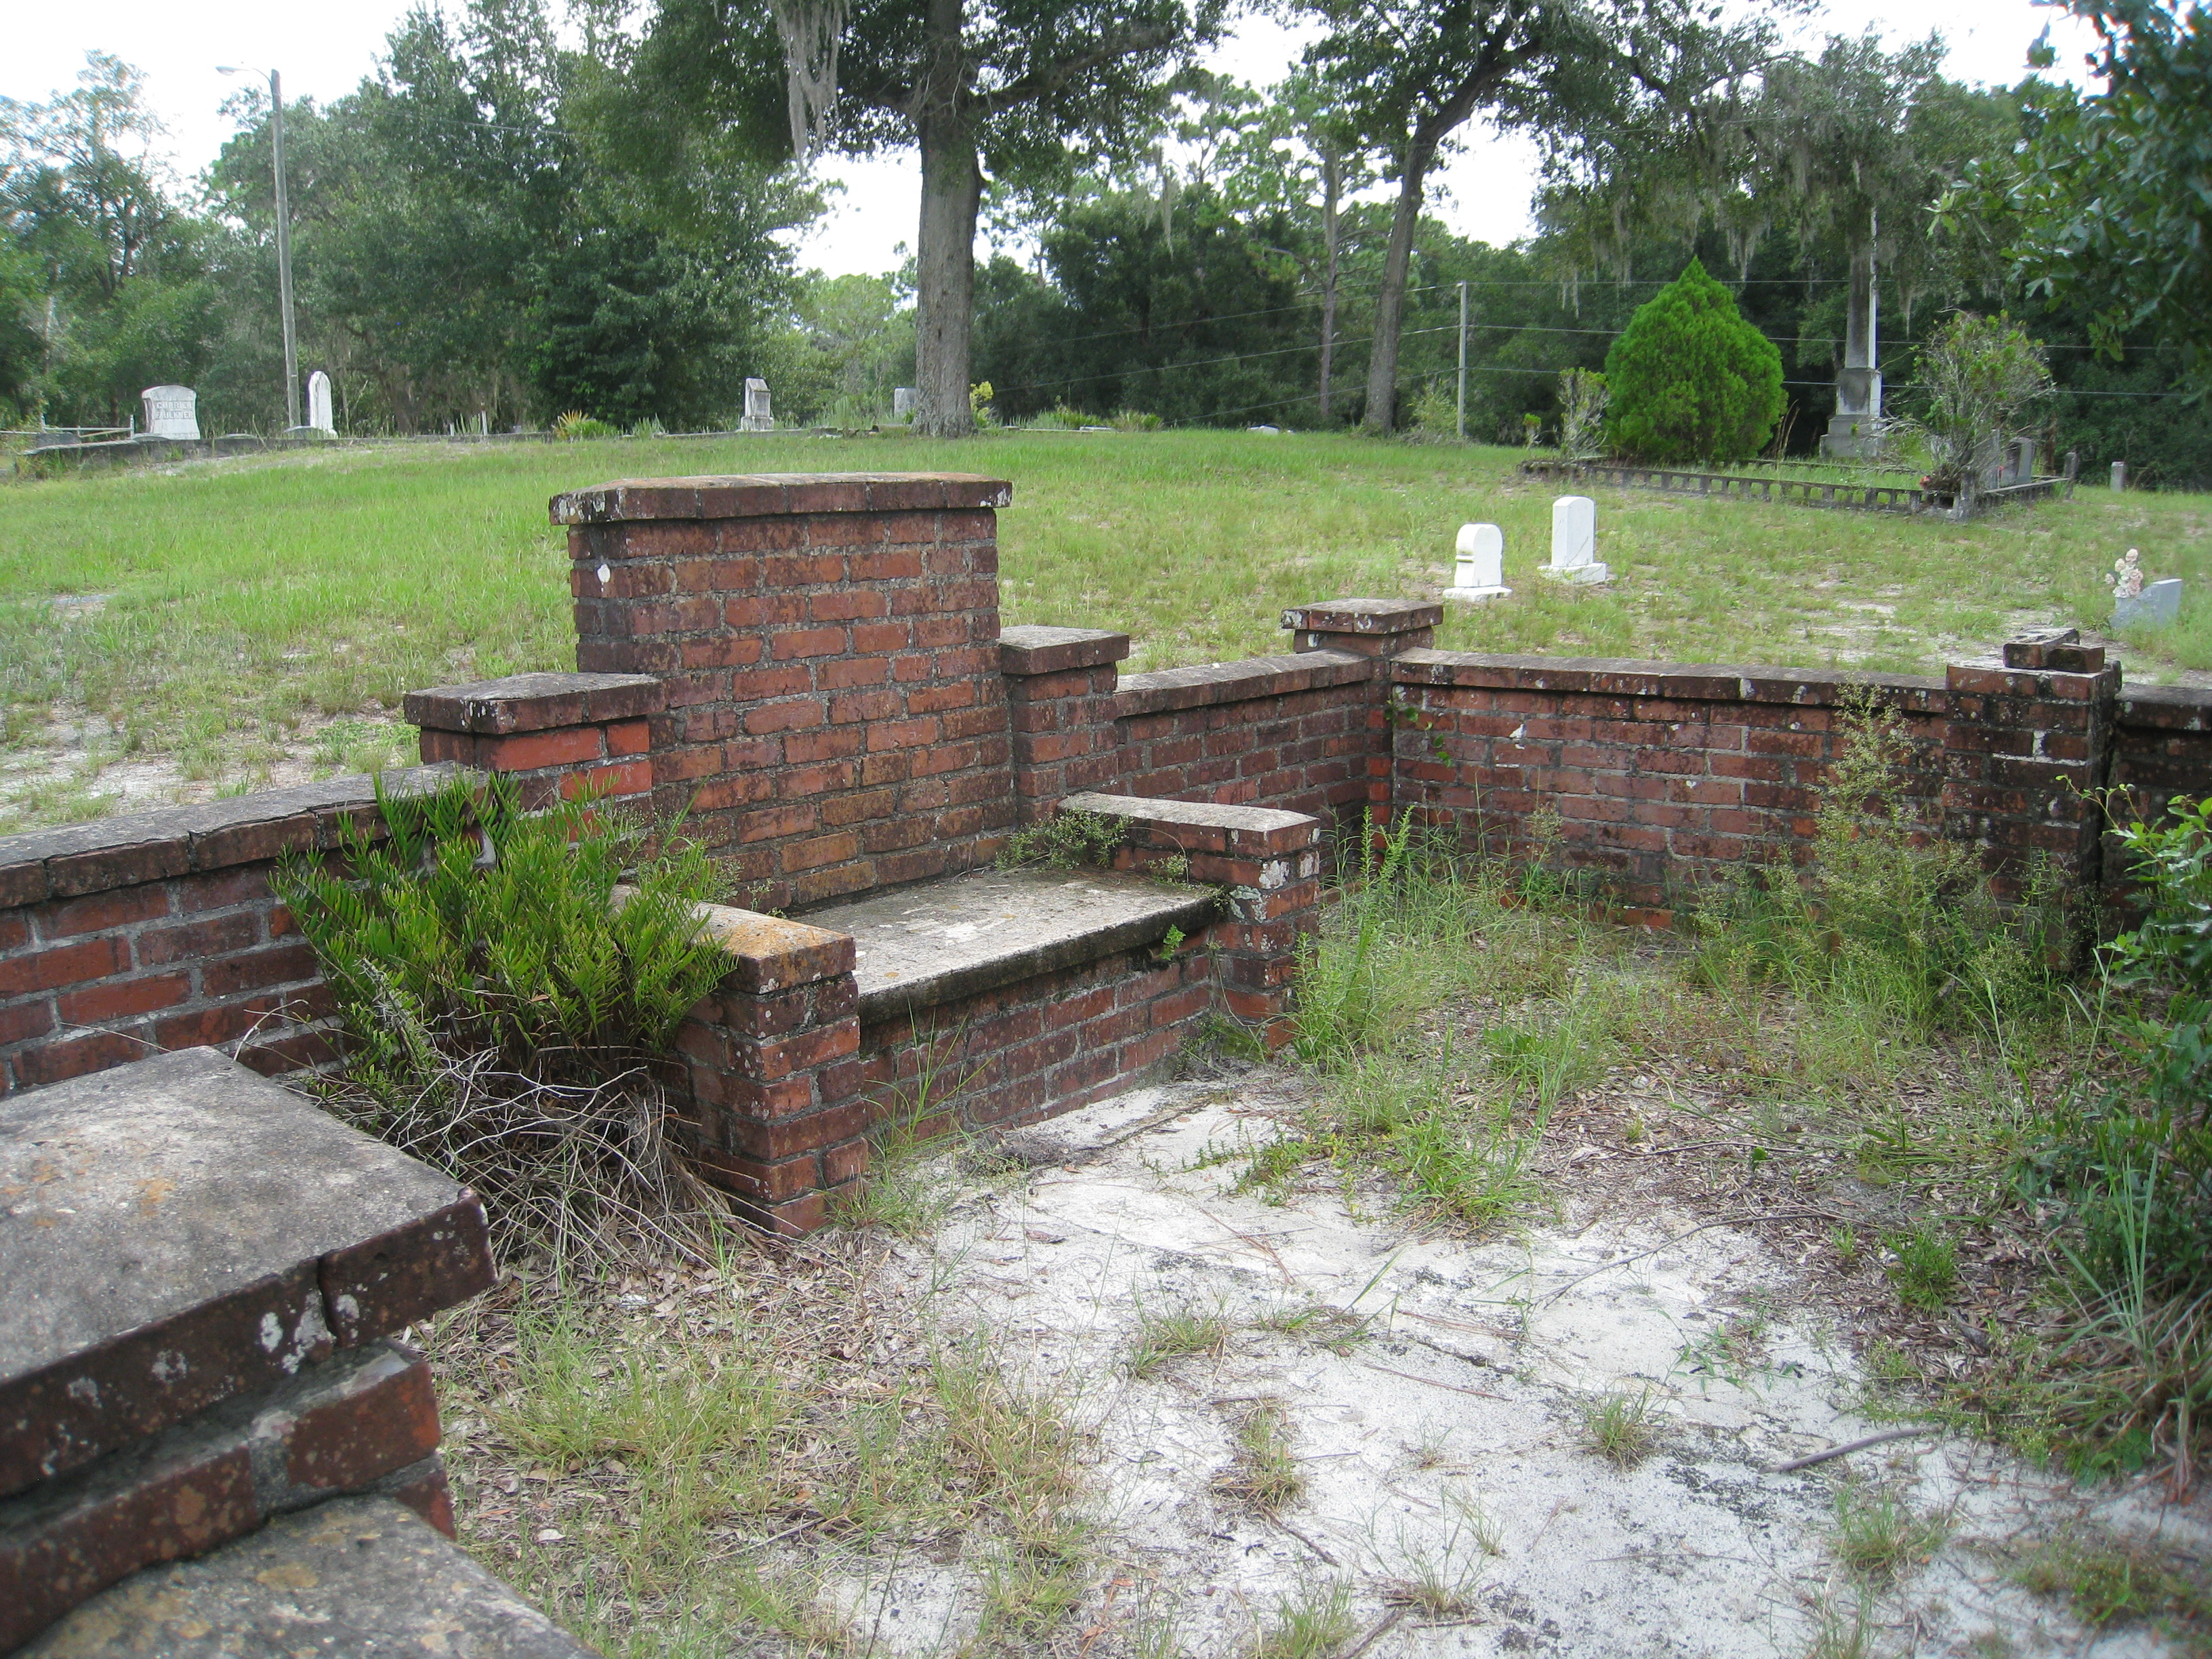 lake helen single girls Browse up-to-date listings across cassadaga lake helen fl single story 4bdrm, 2bath with nice apartment with on site laundry 2 girls looking for a third to.